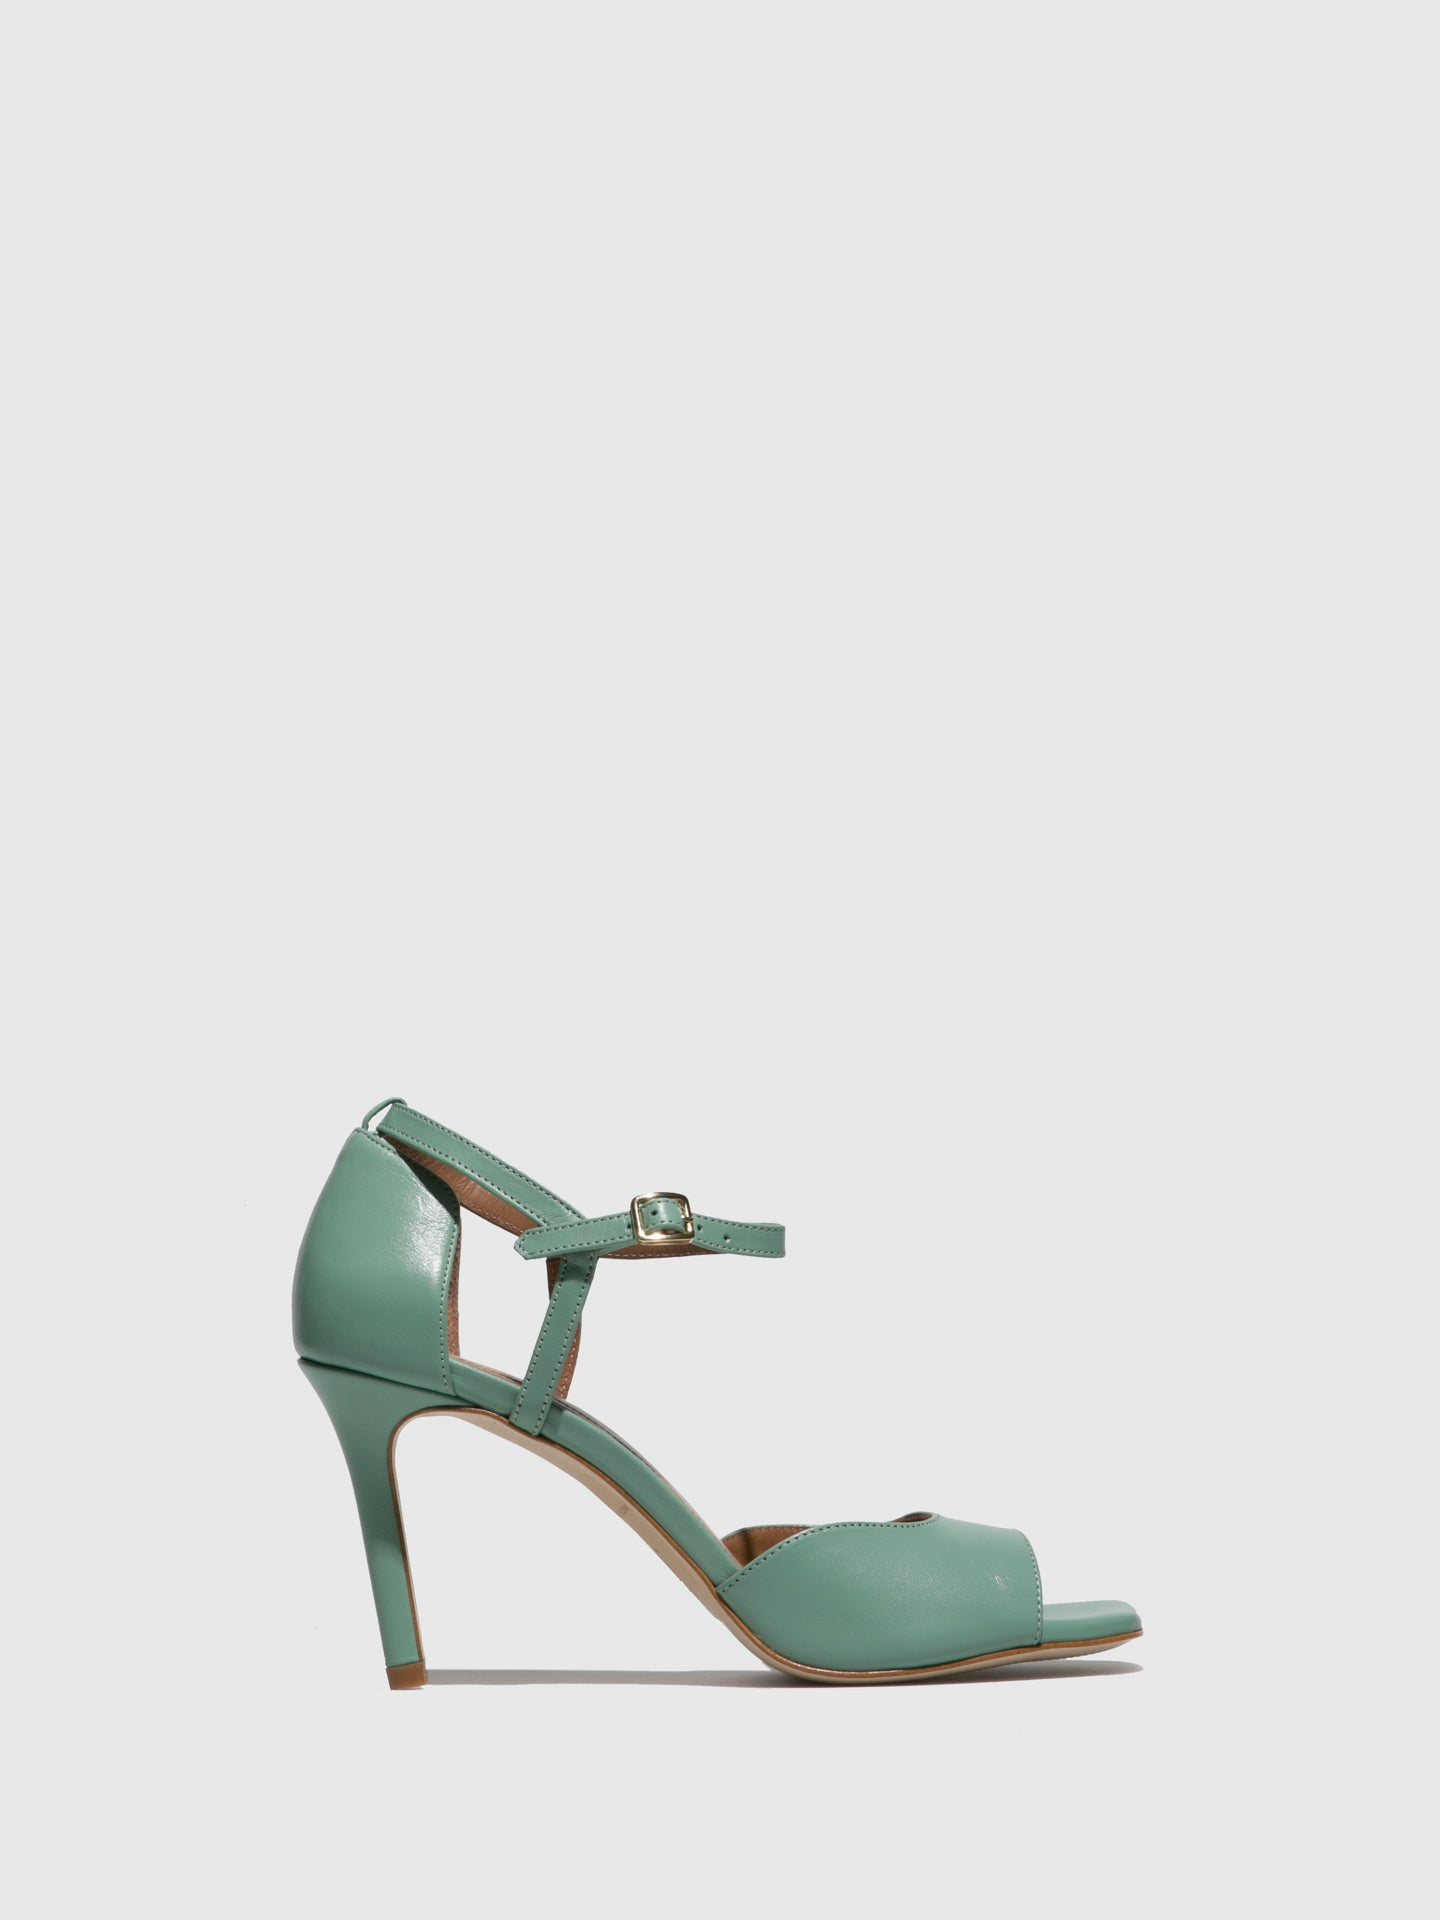 JJ Heitor Green Leather Heel Sandals